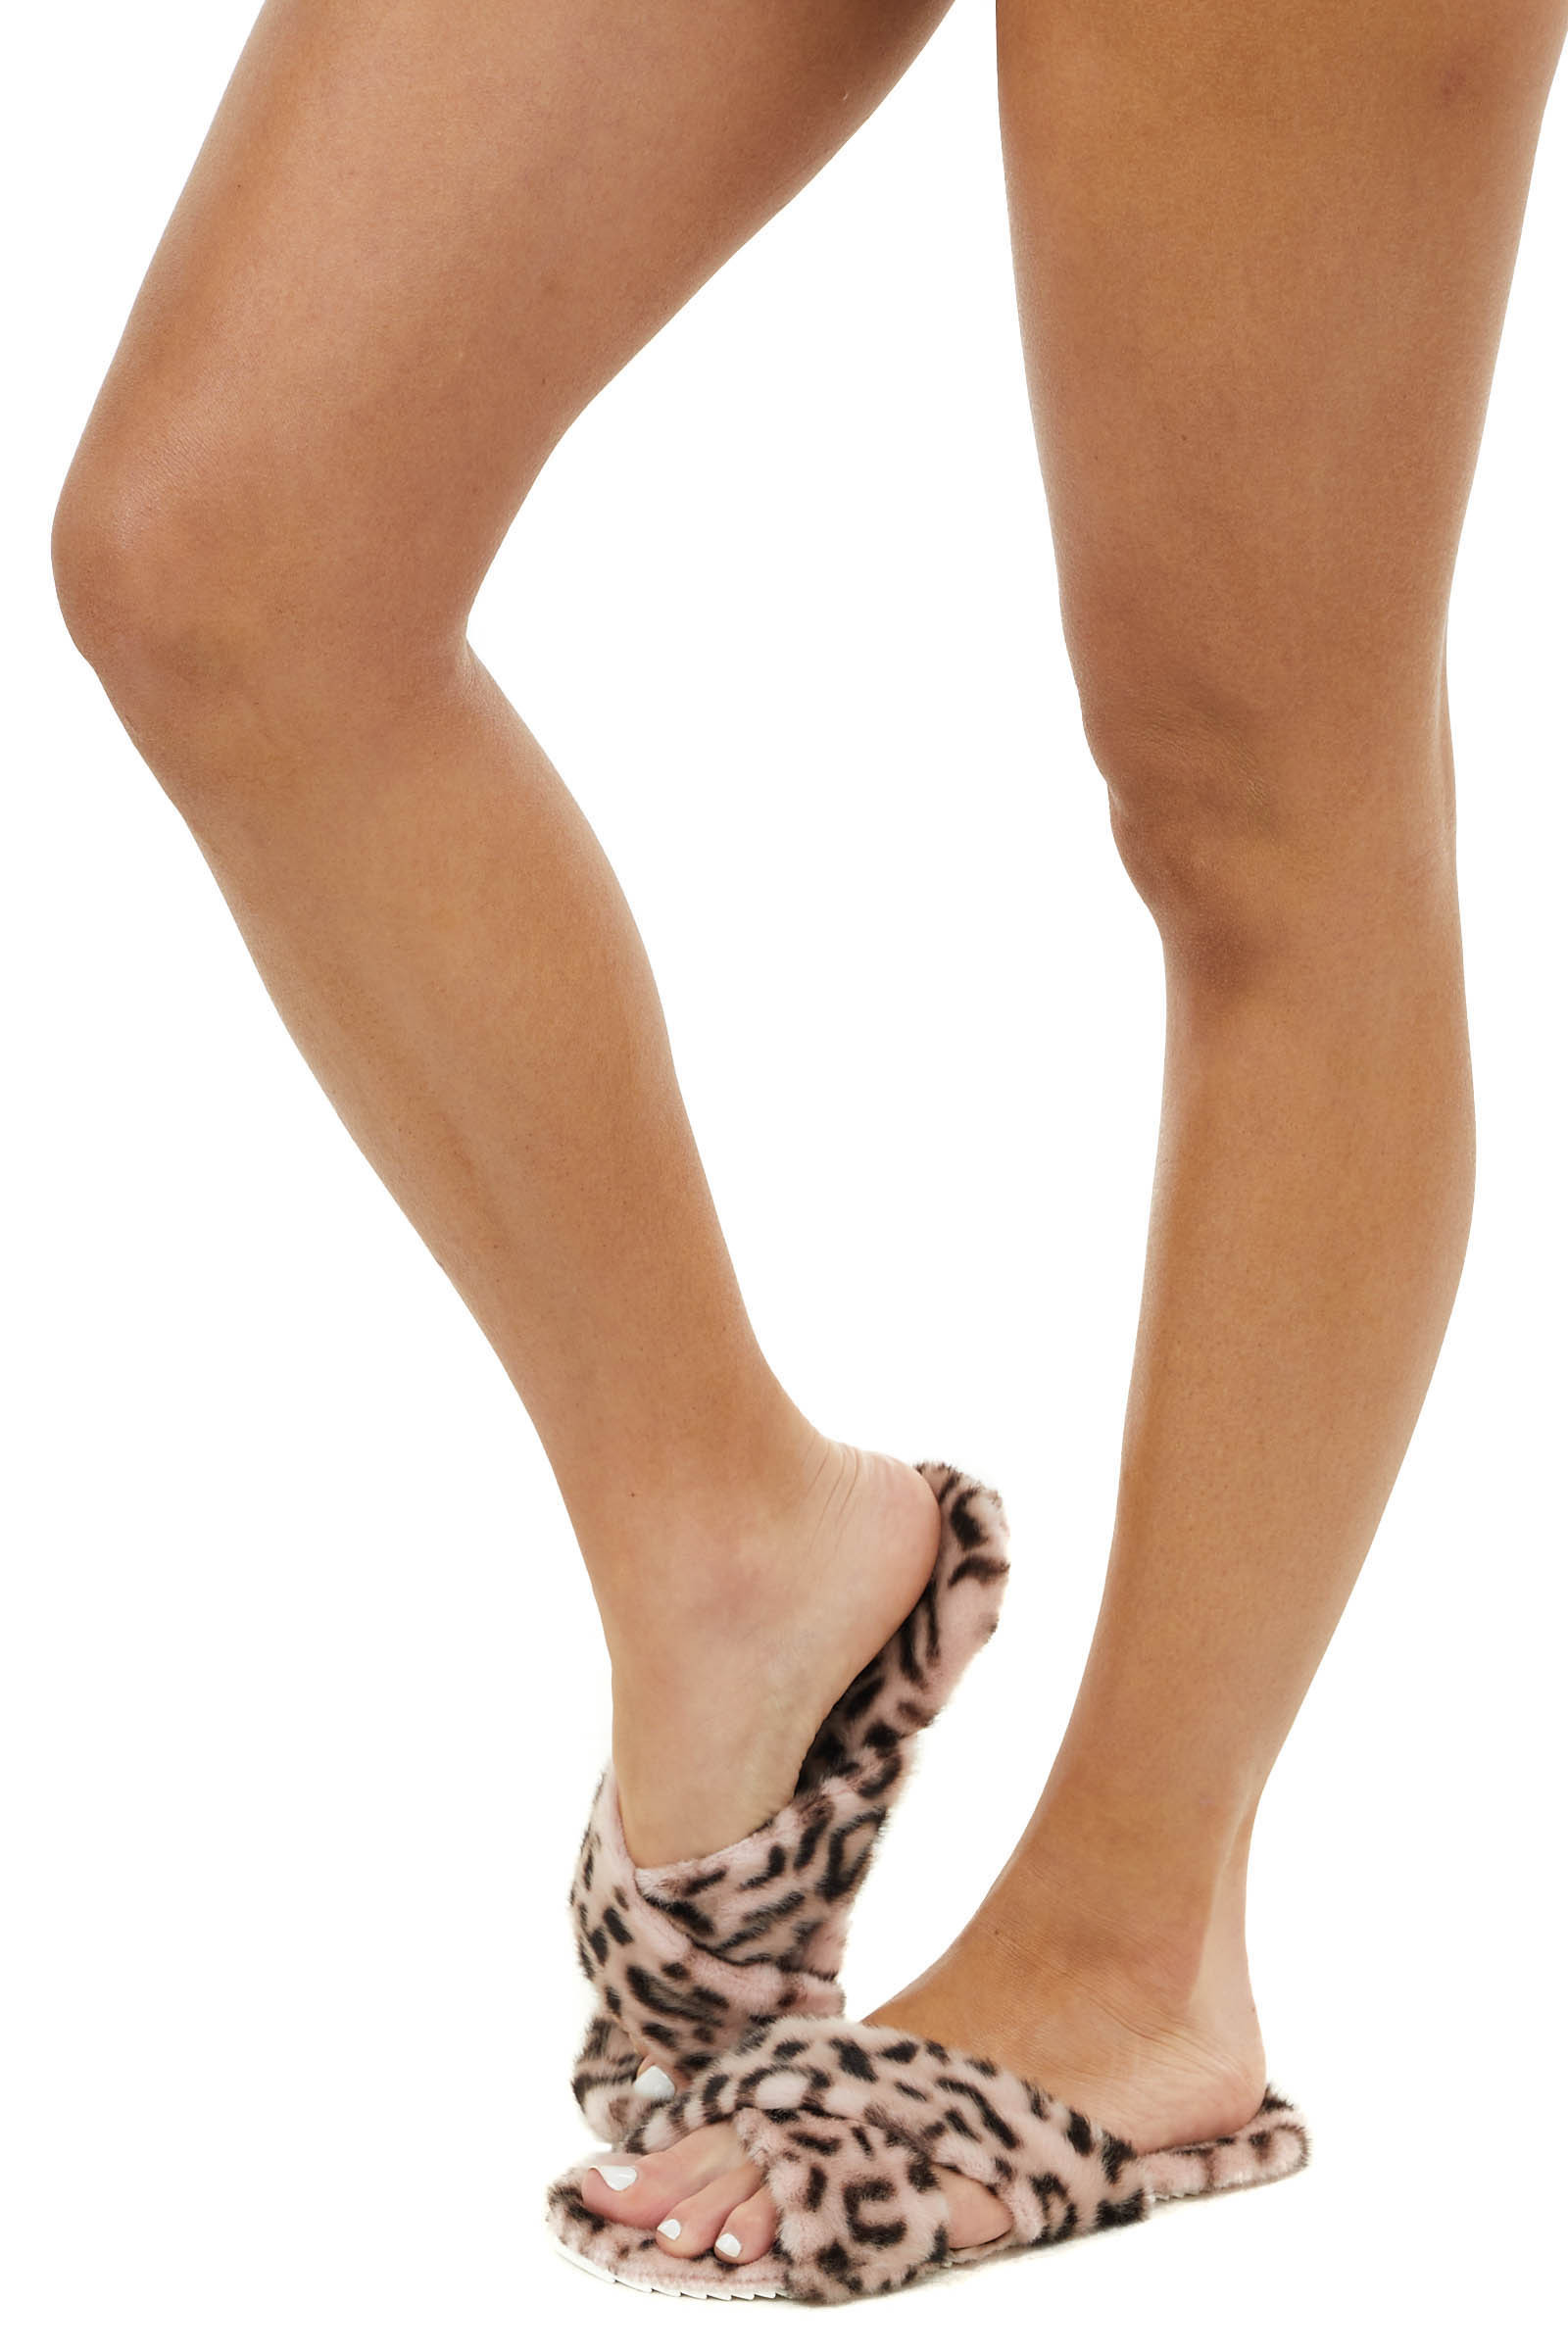 Peach Leopard Fuzzy Open Toed Slippers with Criss Cross Tops